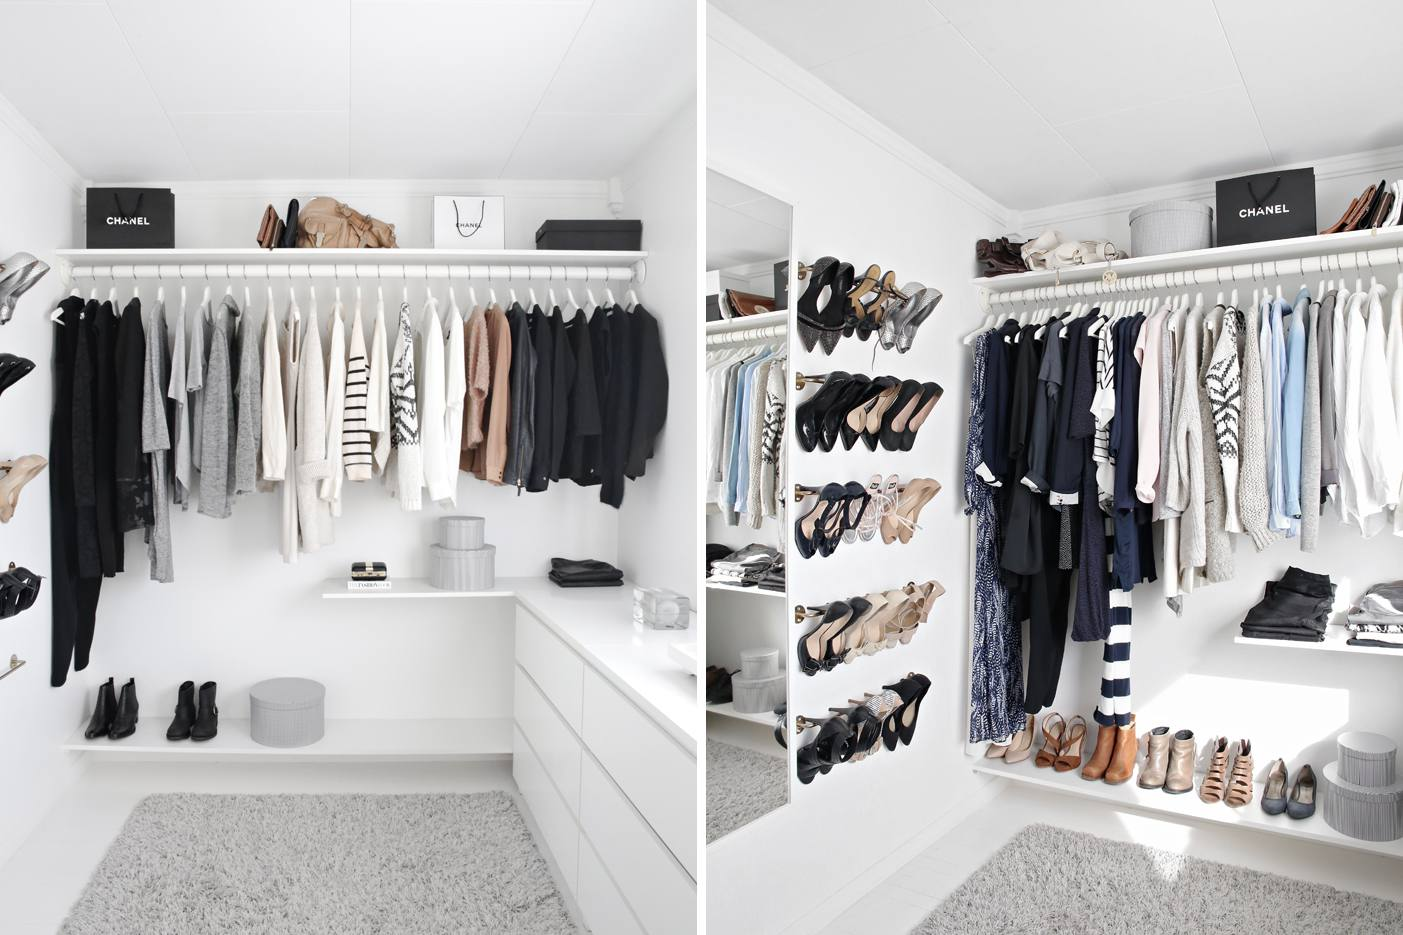 28 Best Small Walk-in Closet Storage Ideas for Bedrooms